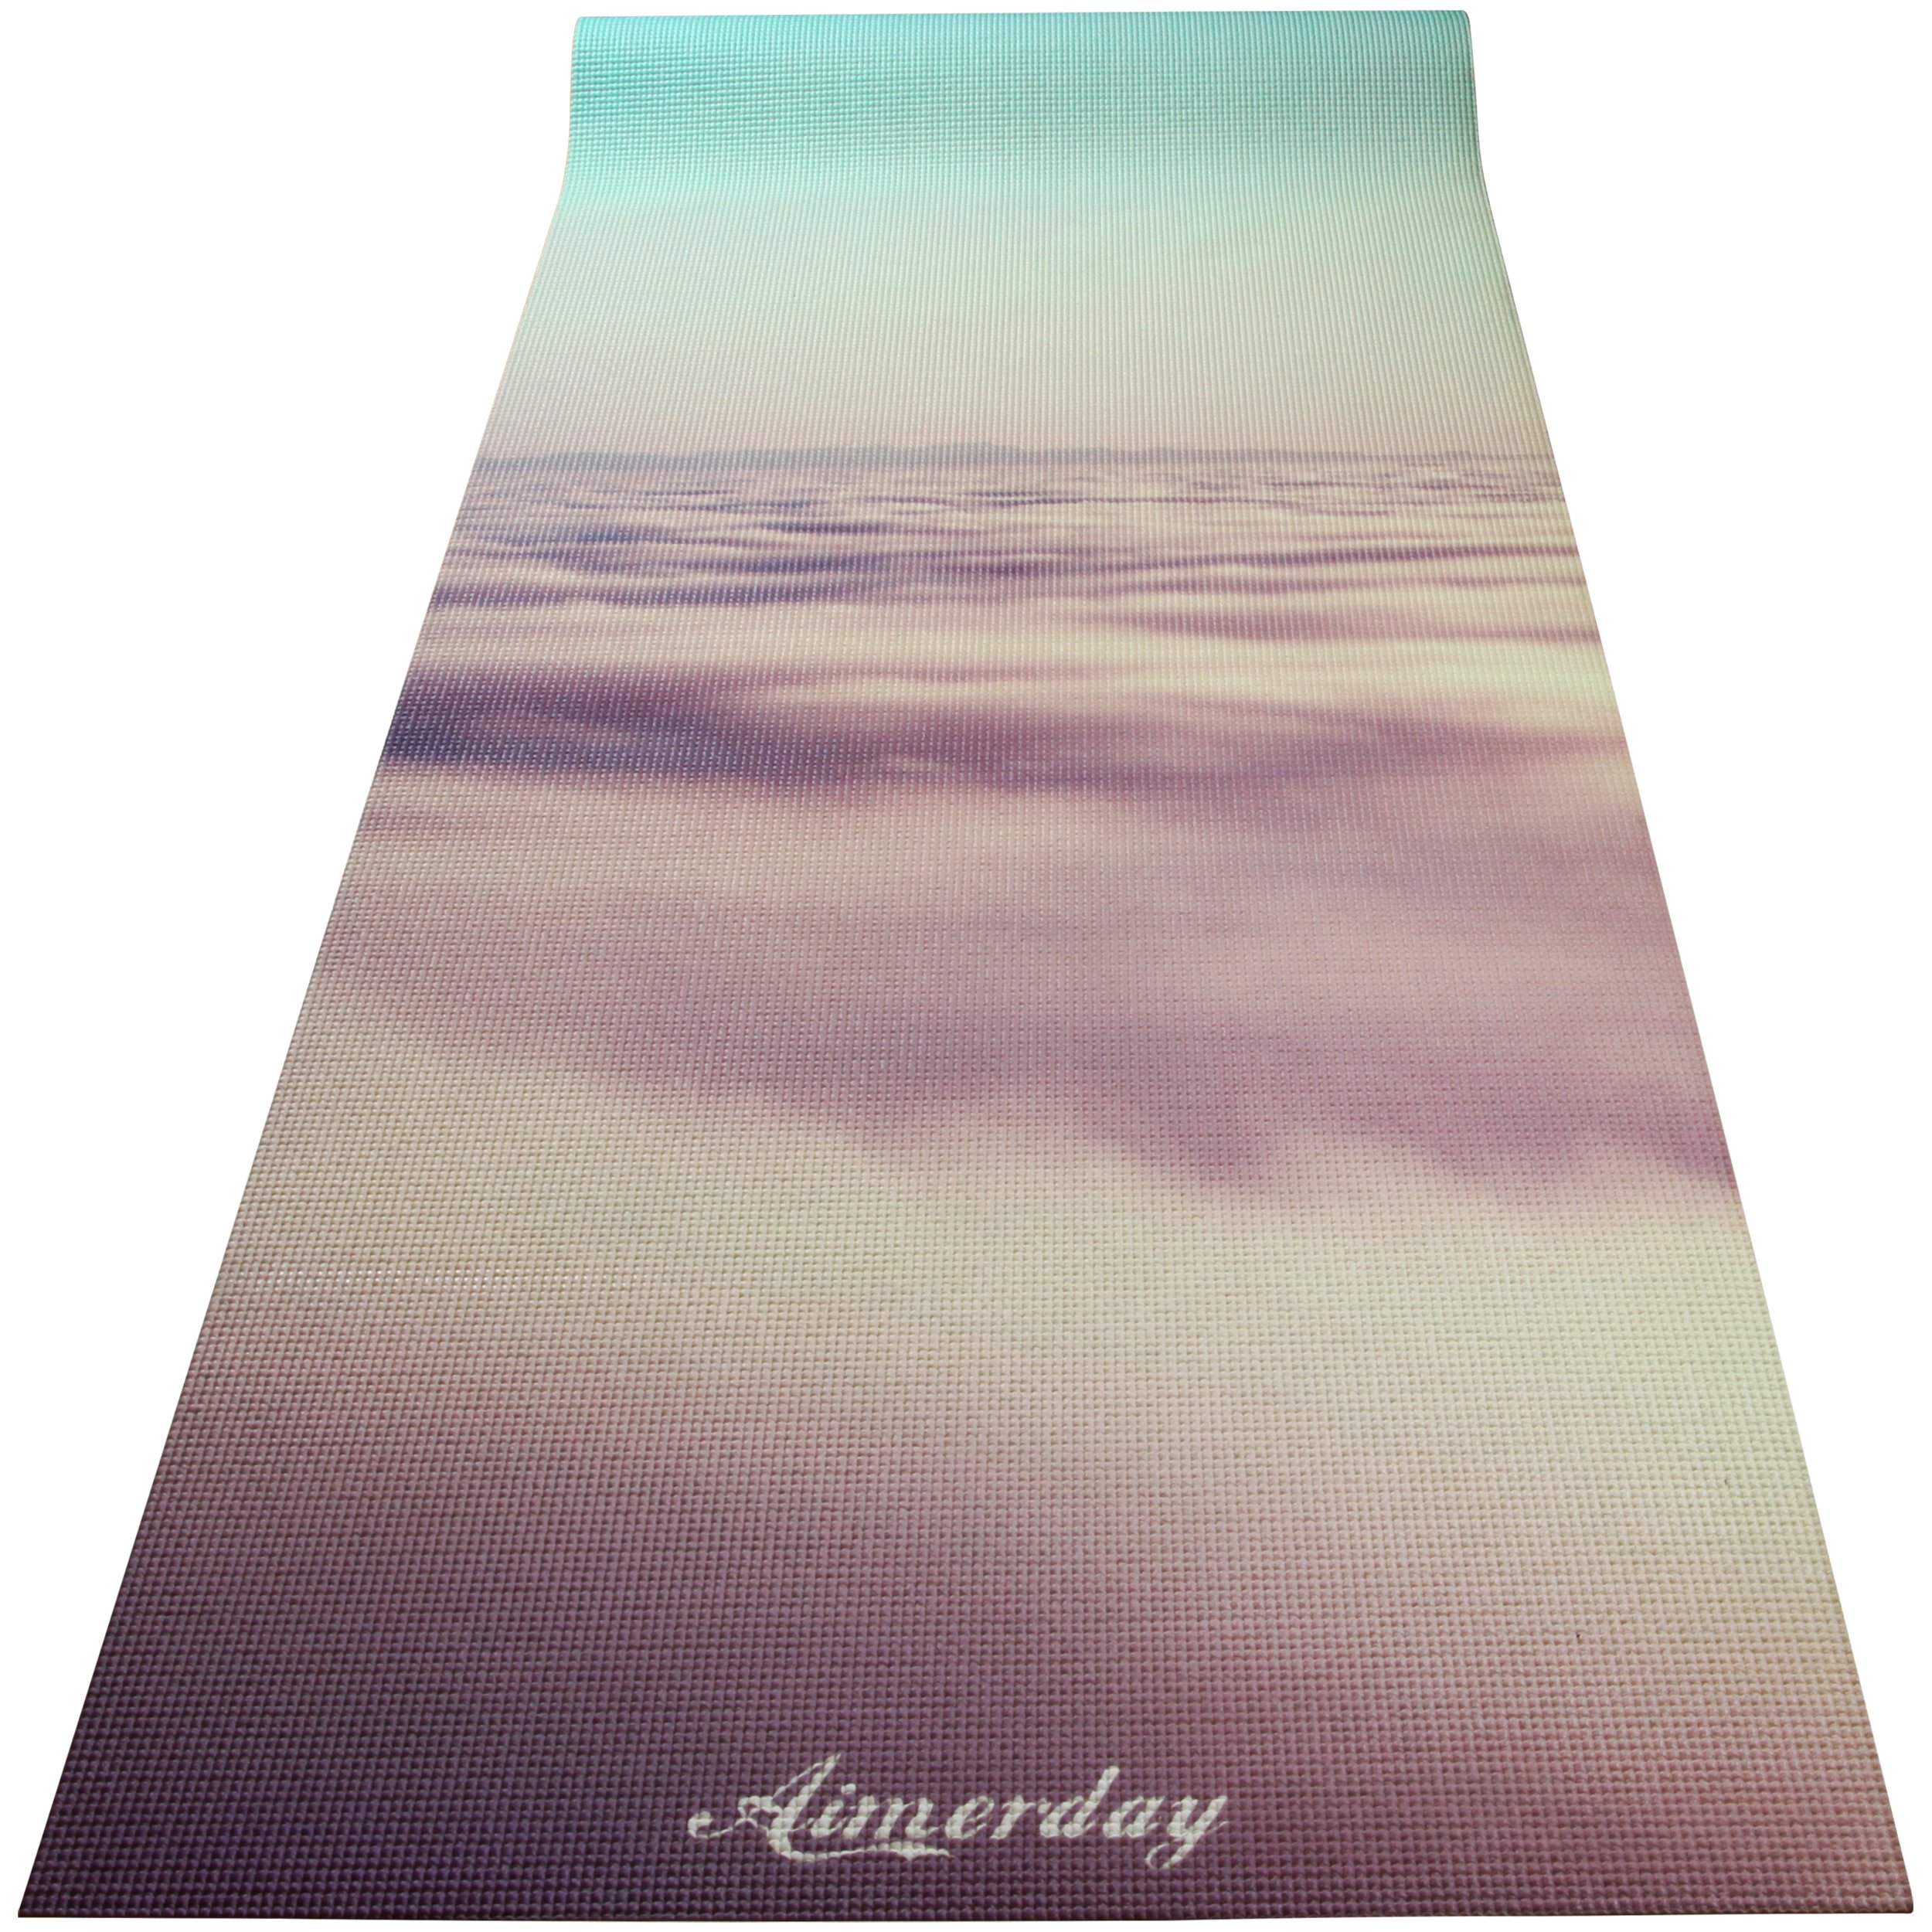 AIMERDAY Premium Print Yoga Mat 72-Inch Long 1/4'' Extra Thick High Density Eco-Friendly Non Slip Exercise Mats for Pilates, Fitness, Hot Yoga with Carrying Strap and Travel Bag